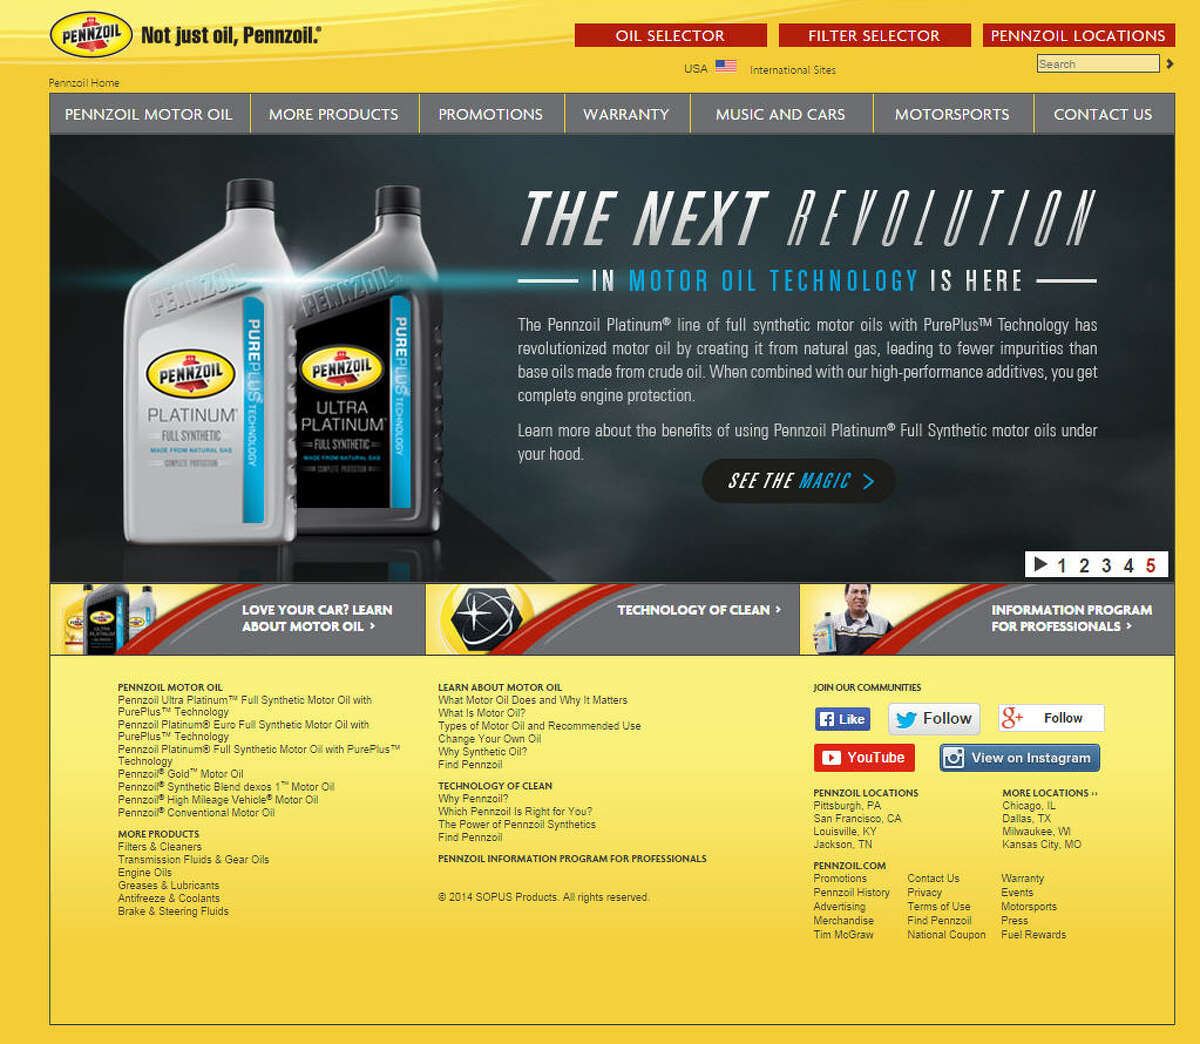 Pennzoil In 1992 The Houston-based company was ordered to pull its ads claiming to be better at protecting car engines than its competition. The federal judge in the case ruled the ads were false and misleading. The suit was filed by Pennzoil competitor, Castrol. Source: Associated Press